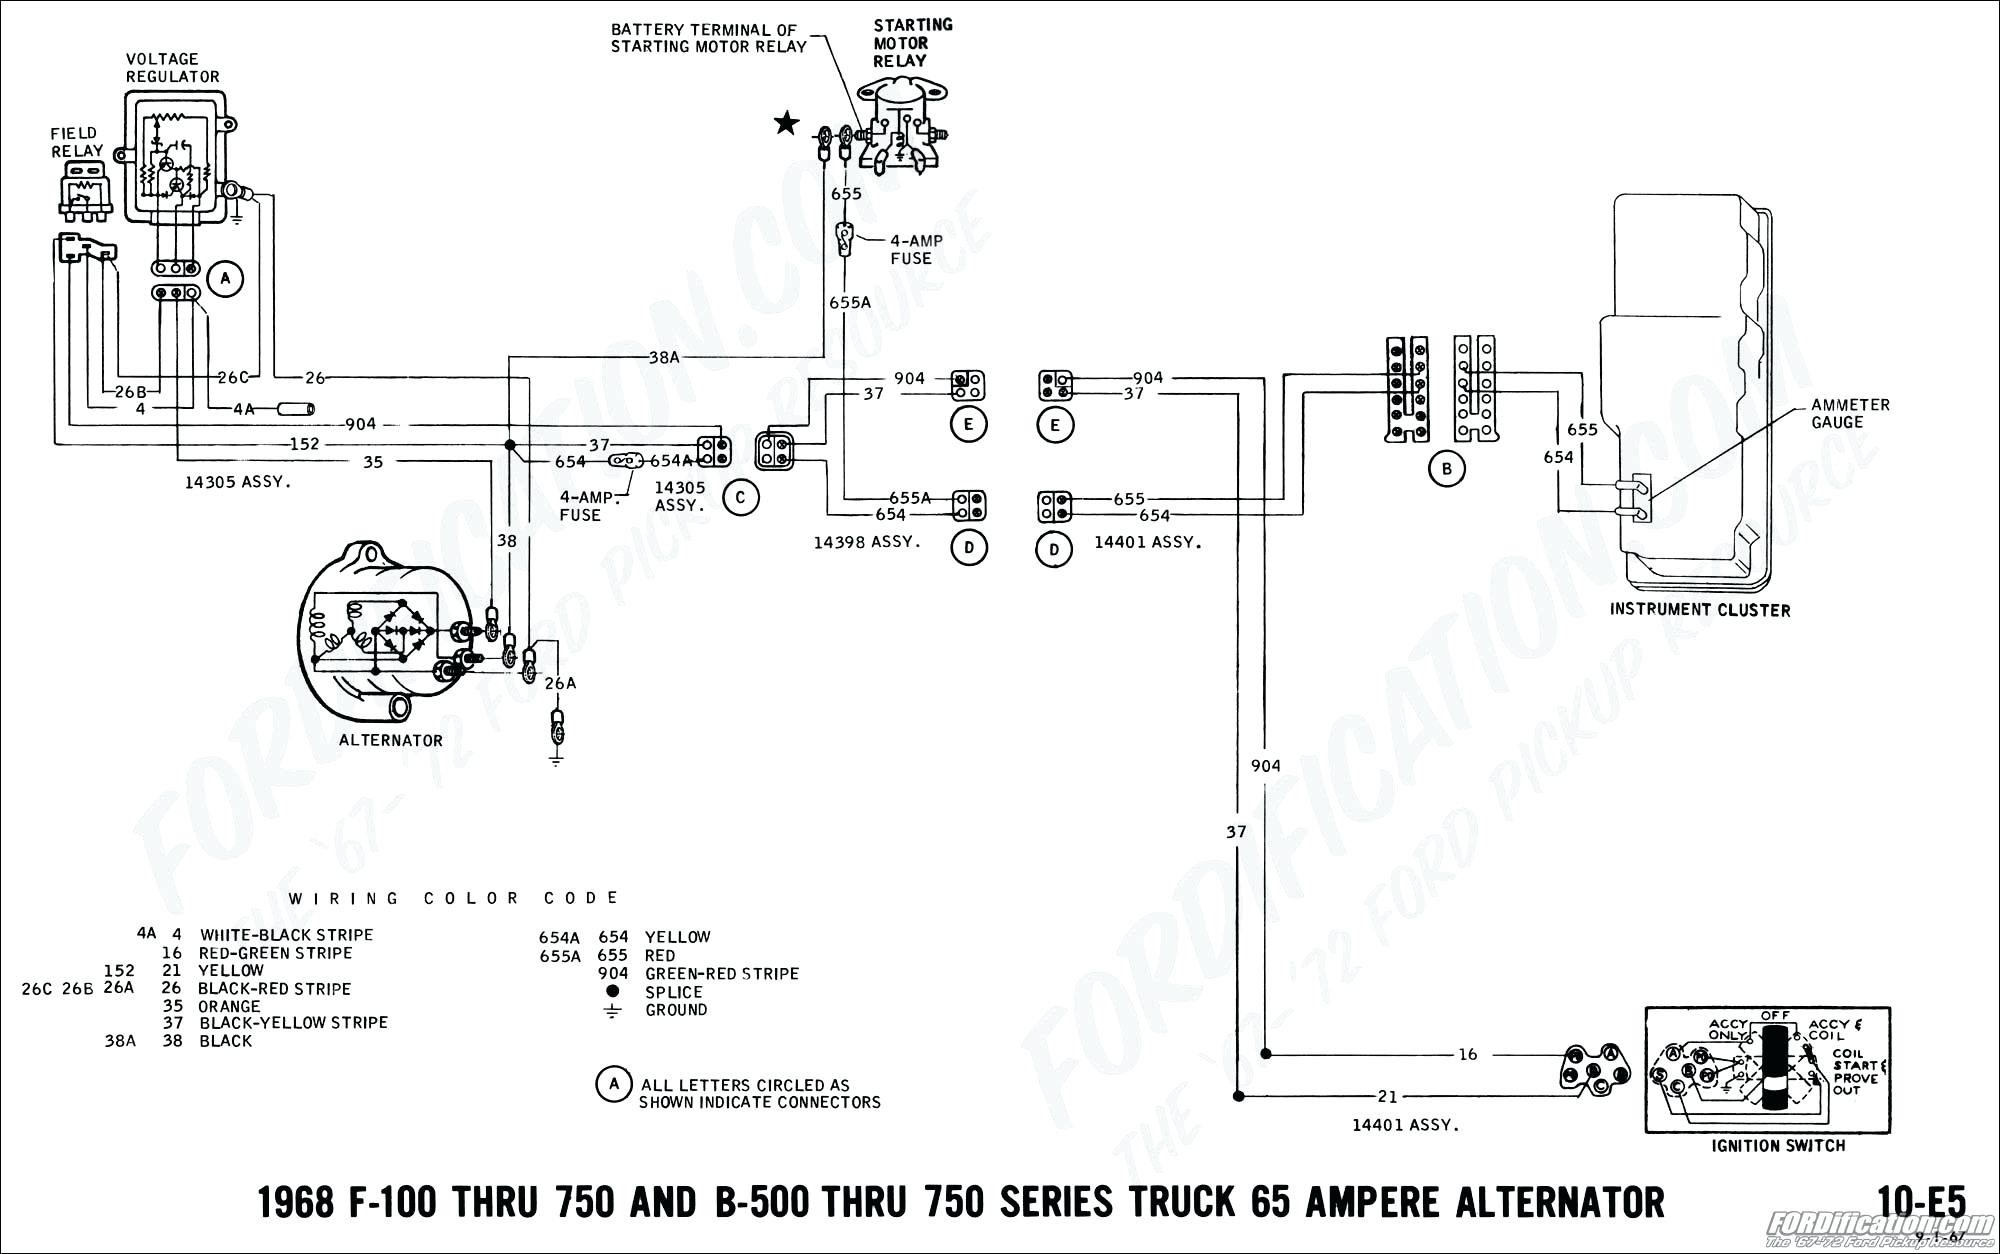 Hyster Forklift Diagram View Diagram Hyster Forklift Wiring Diagram on